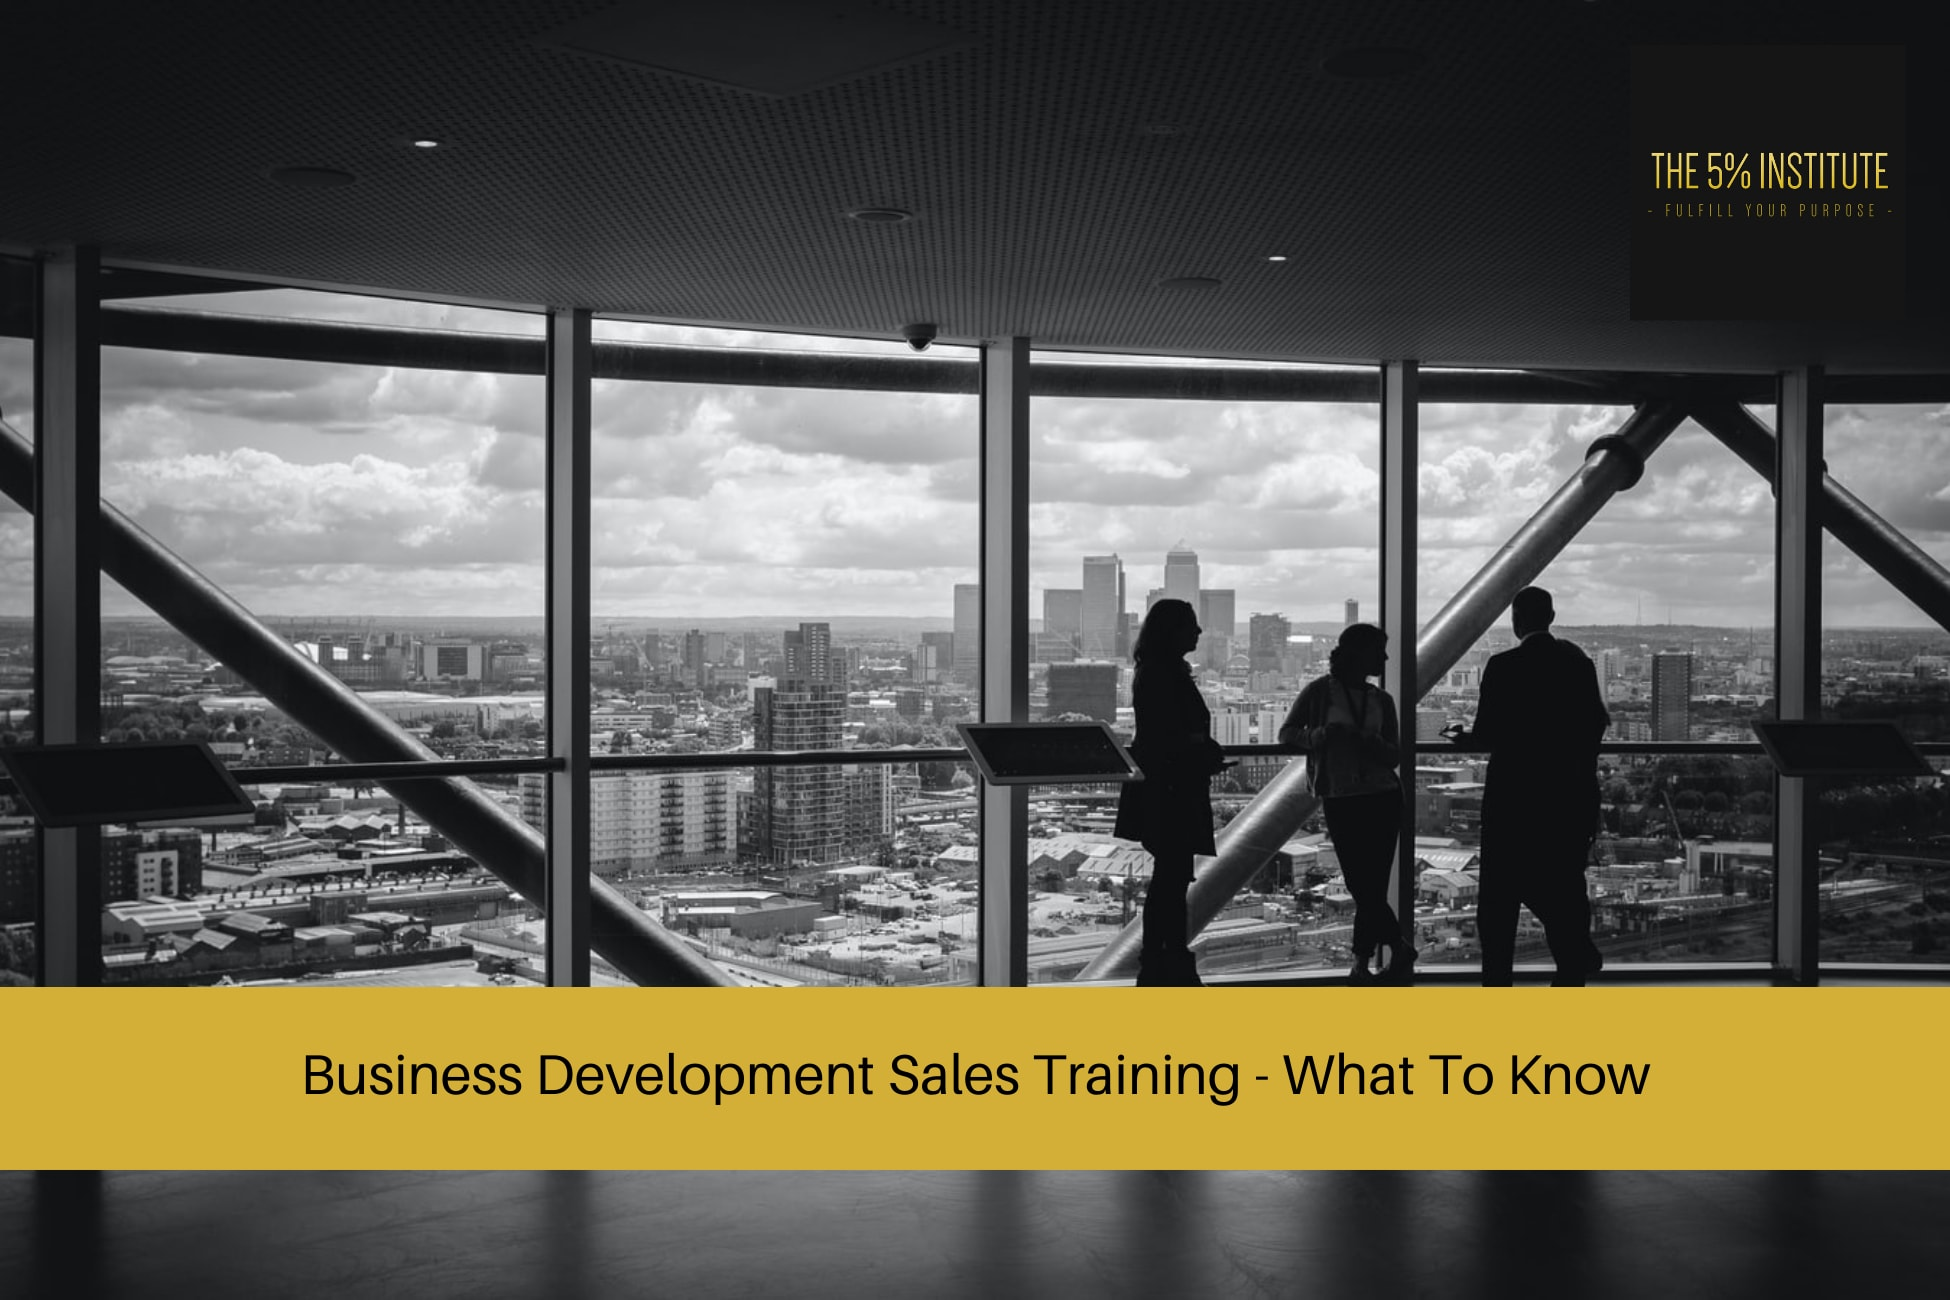 Business Development Sales Training